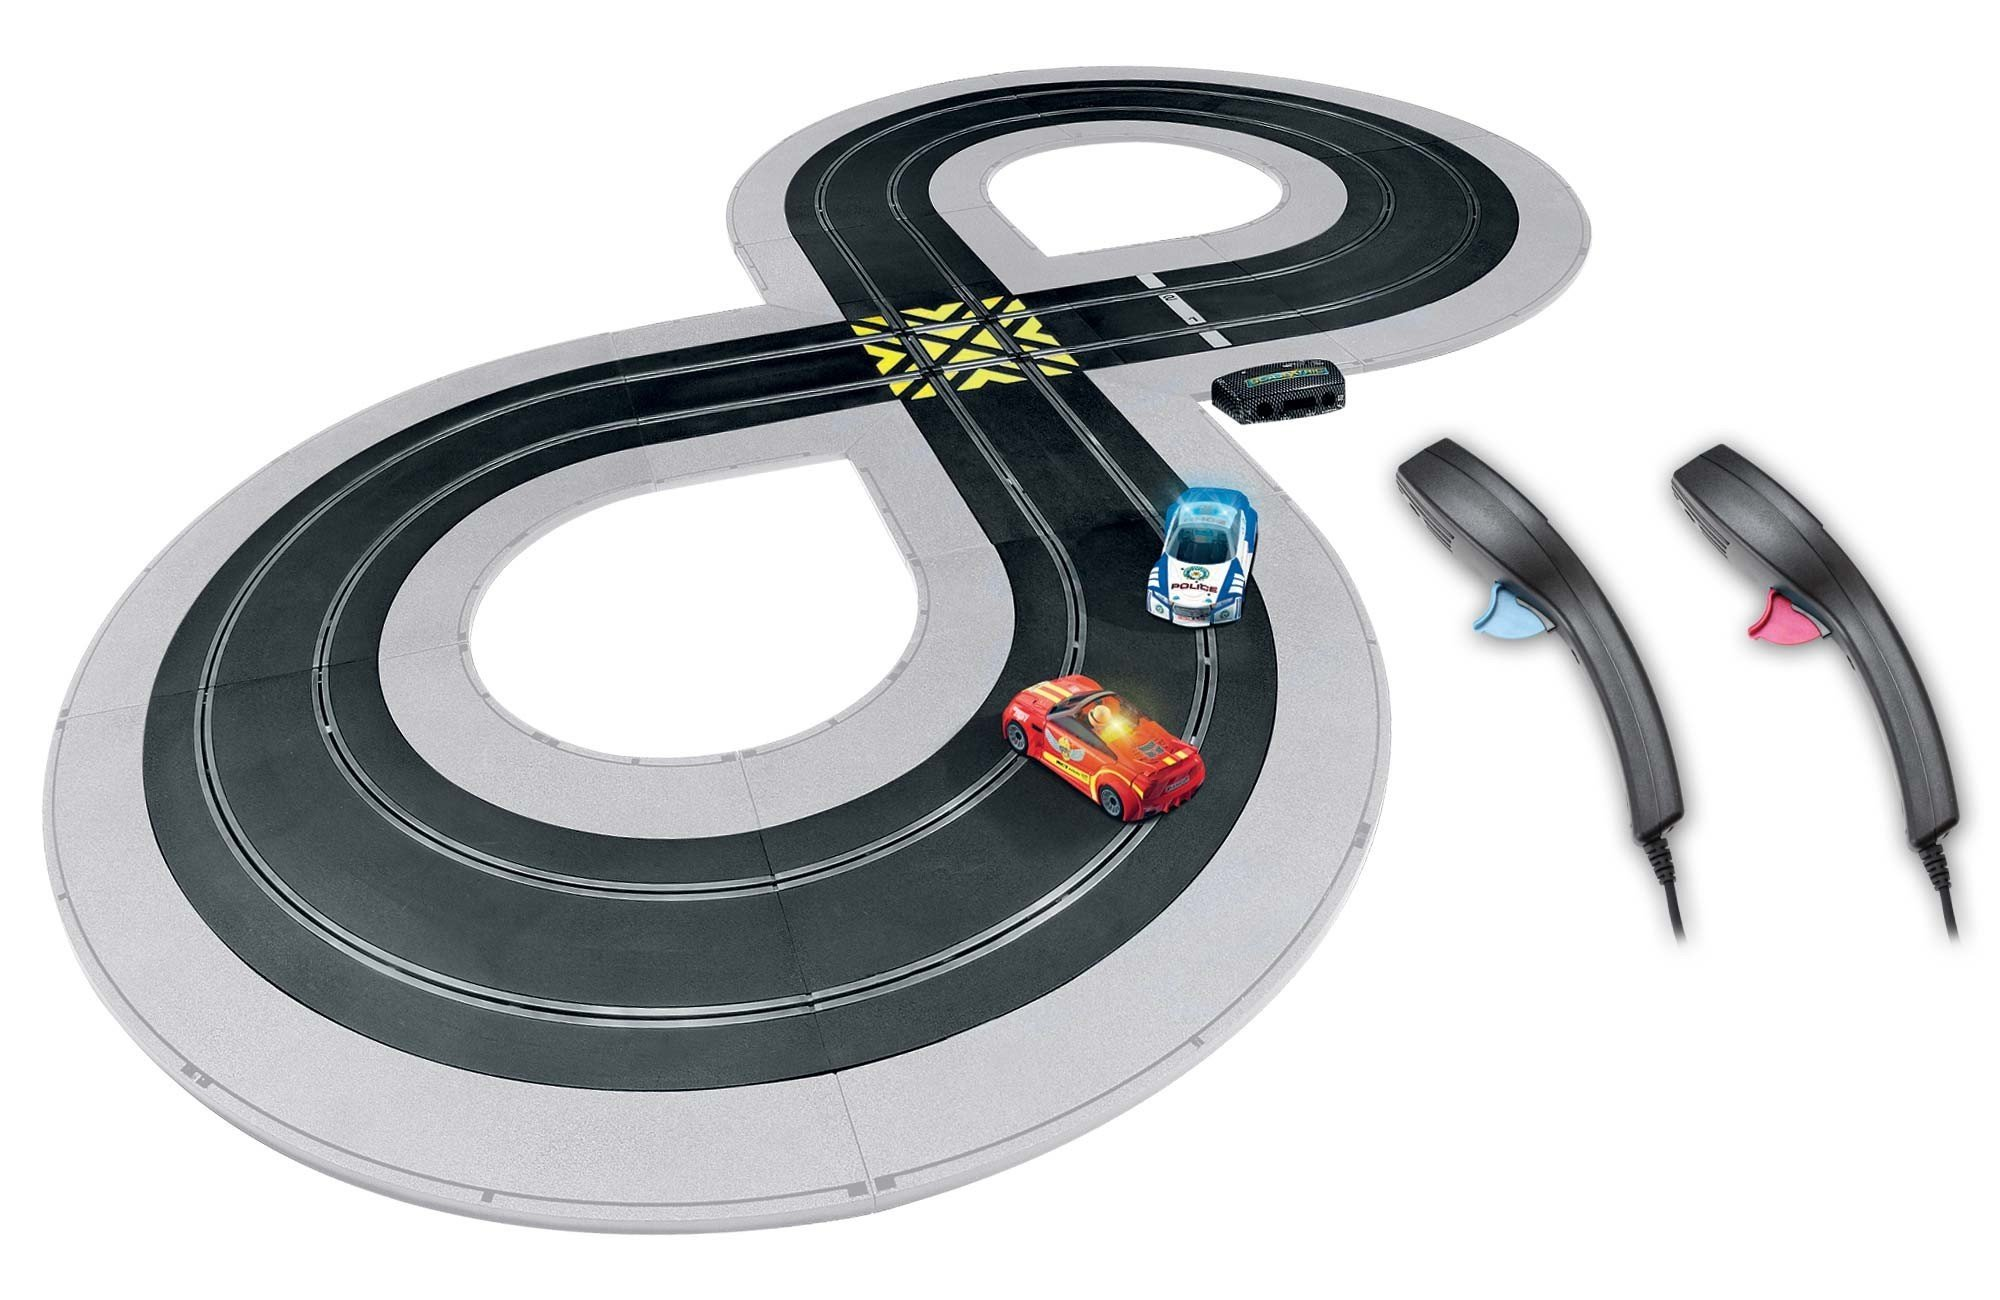 Scalextric C1323T Build, Race Quick Build Cops N Robbers 1:32 Slot Car Race Set by Scalextric